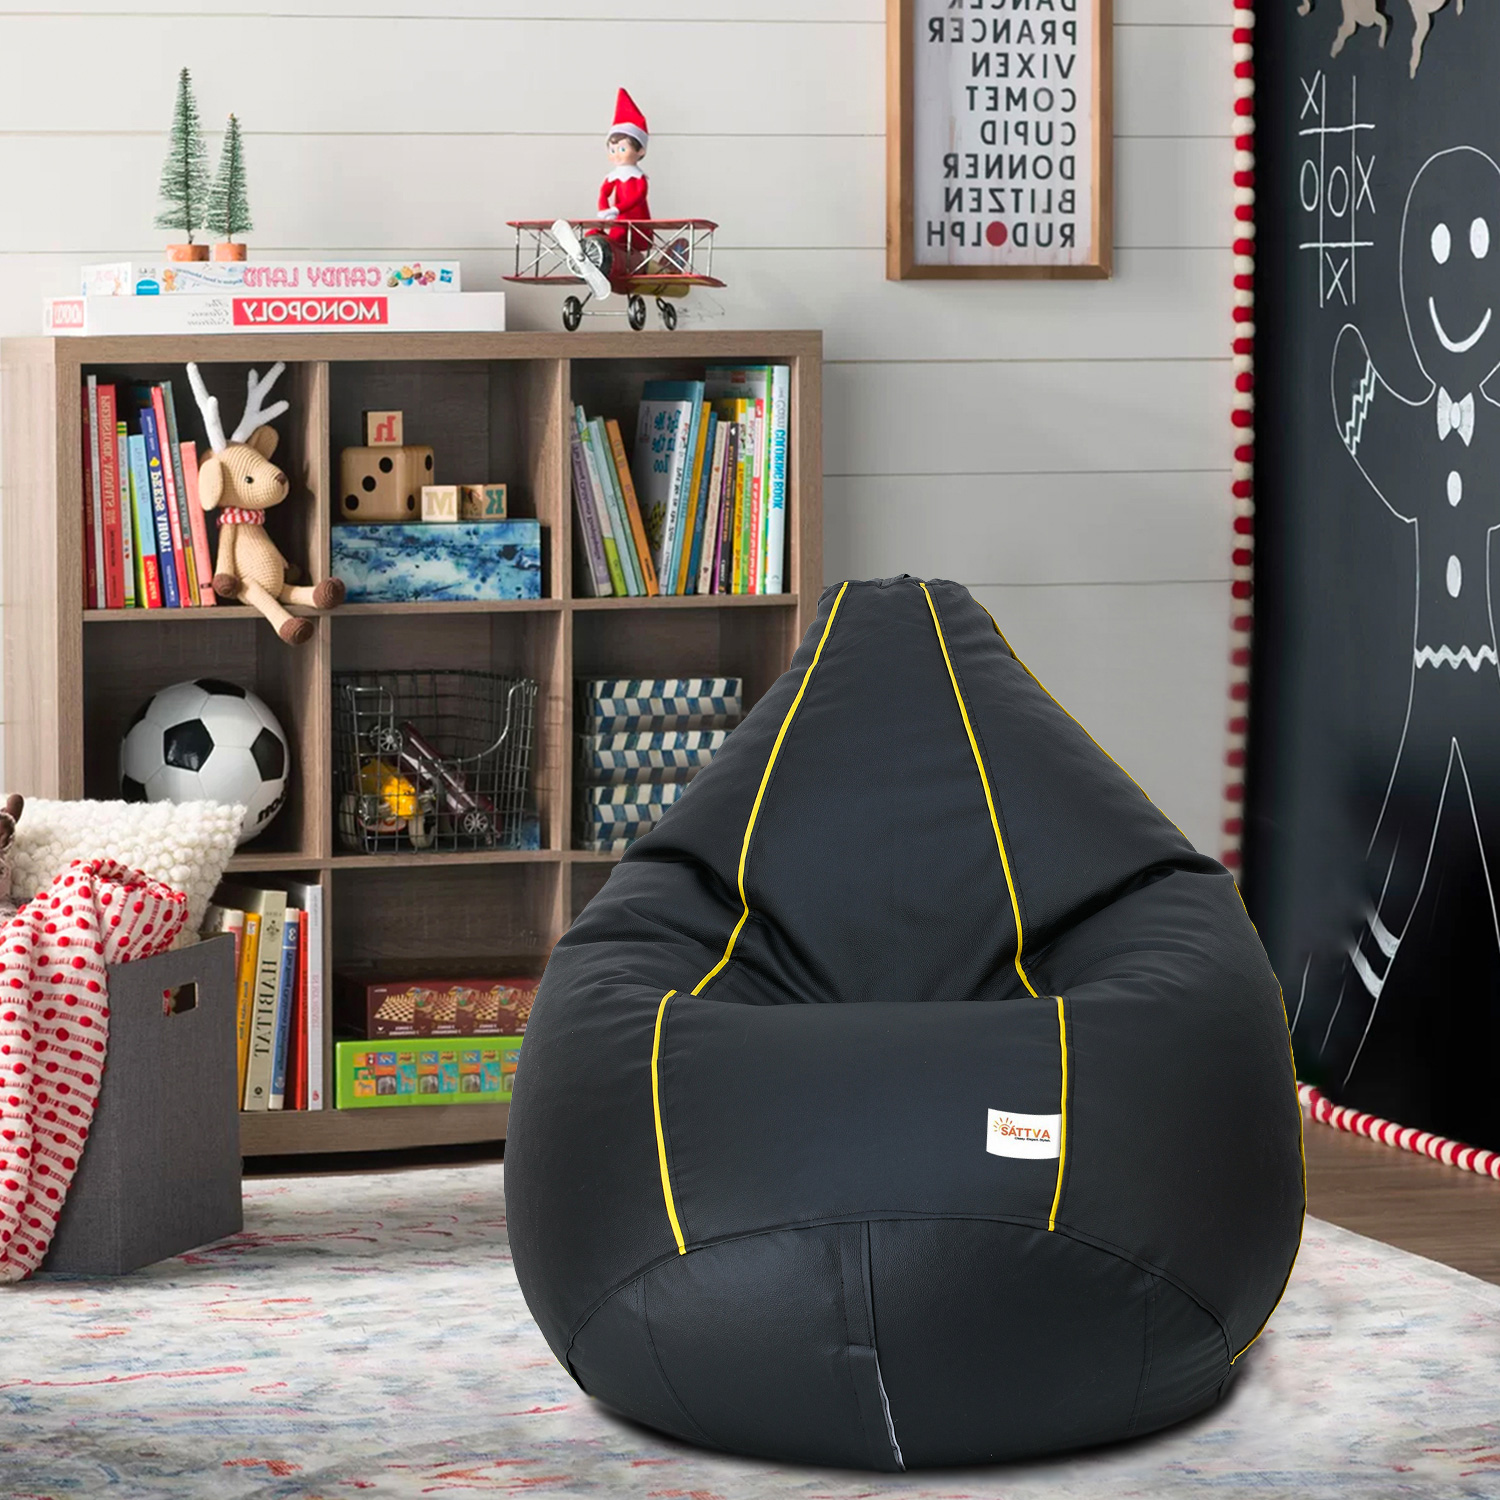 Sattva Classic XXXL Bean Bag Filled (with Beans) Colour - Black With Yellow Piping